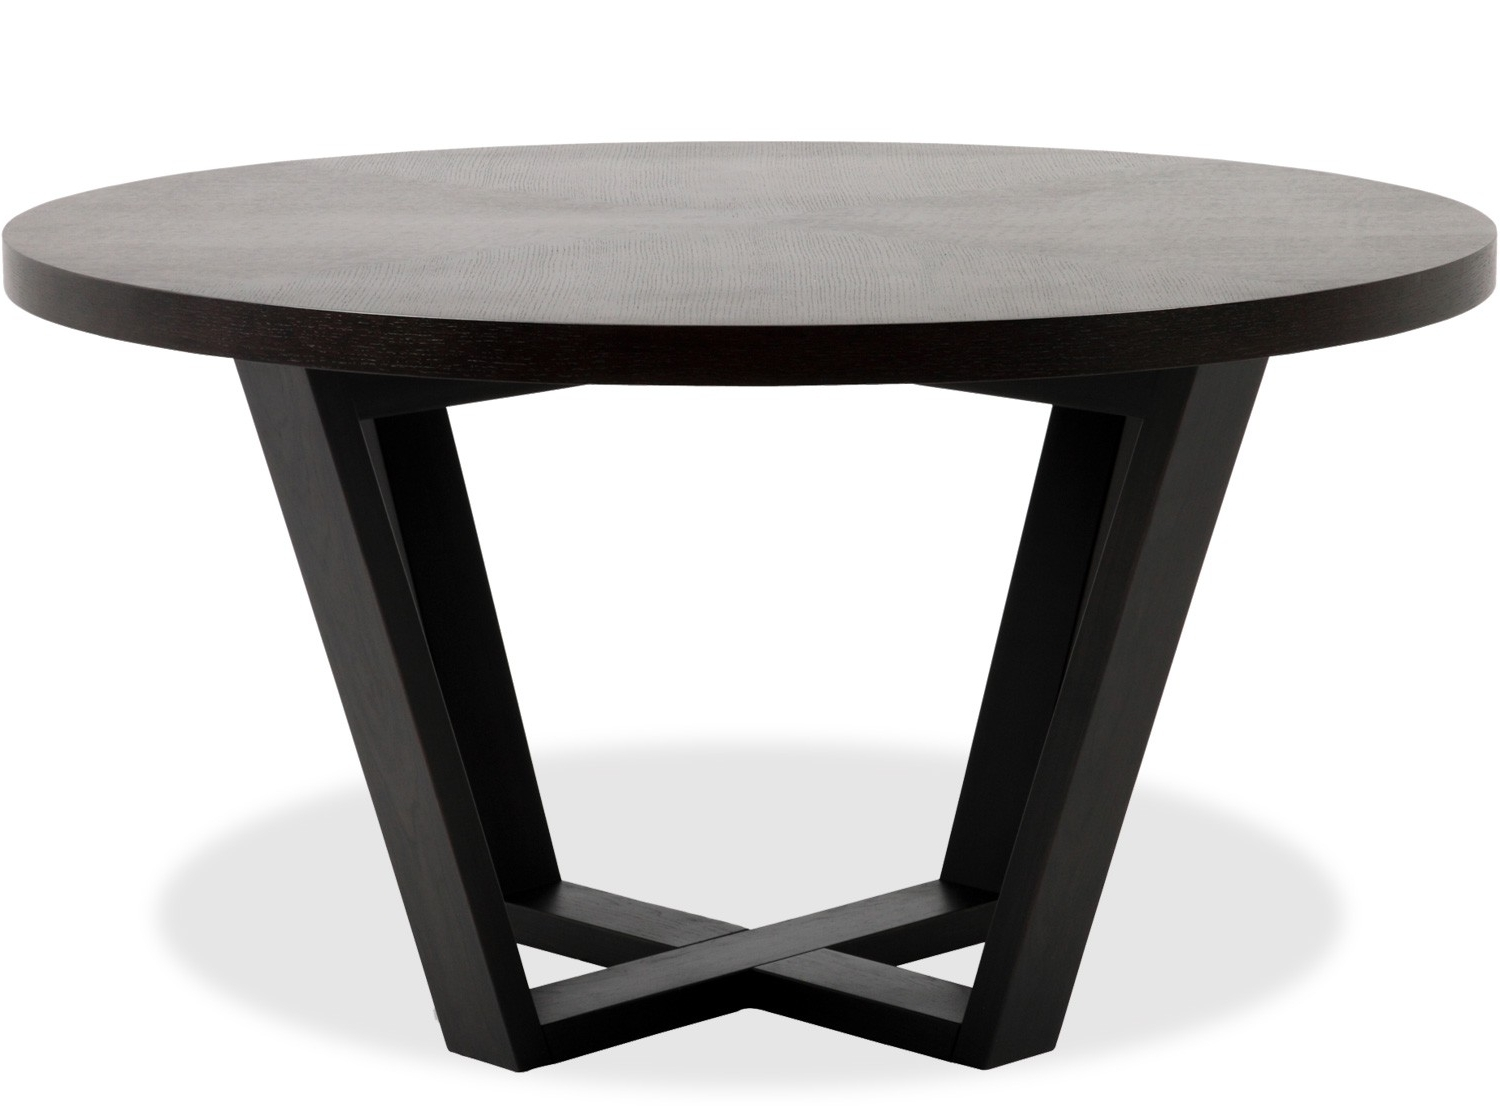 Latest Black Circular Dining Tables Inside Dining Tables: Outstanding Round Black Dining Table Round Pedestal (View 3 of 25)